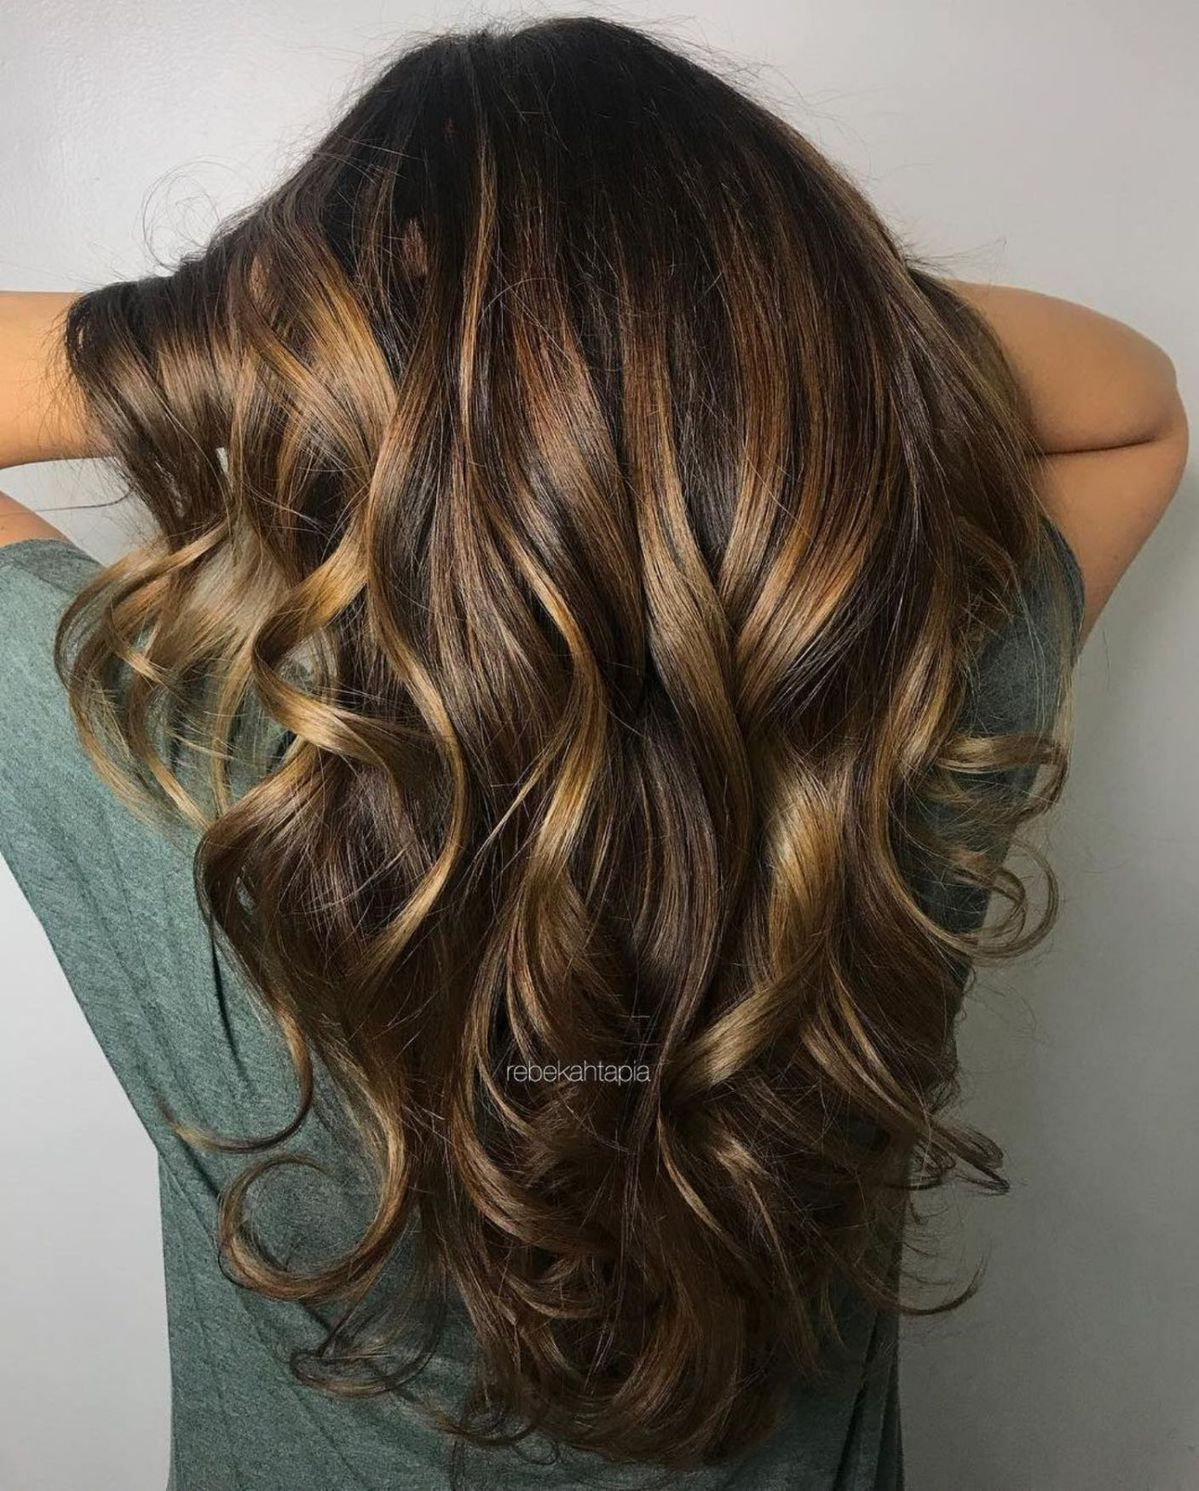 "Dark Brown Hair With Chunky Golden Highlights<p><a href=""http://www.homeinteriordesign.org/2018/02/short-guide-to-interior-decoration.html"">Short guide to interior decoration</a></p>"